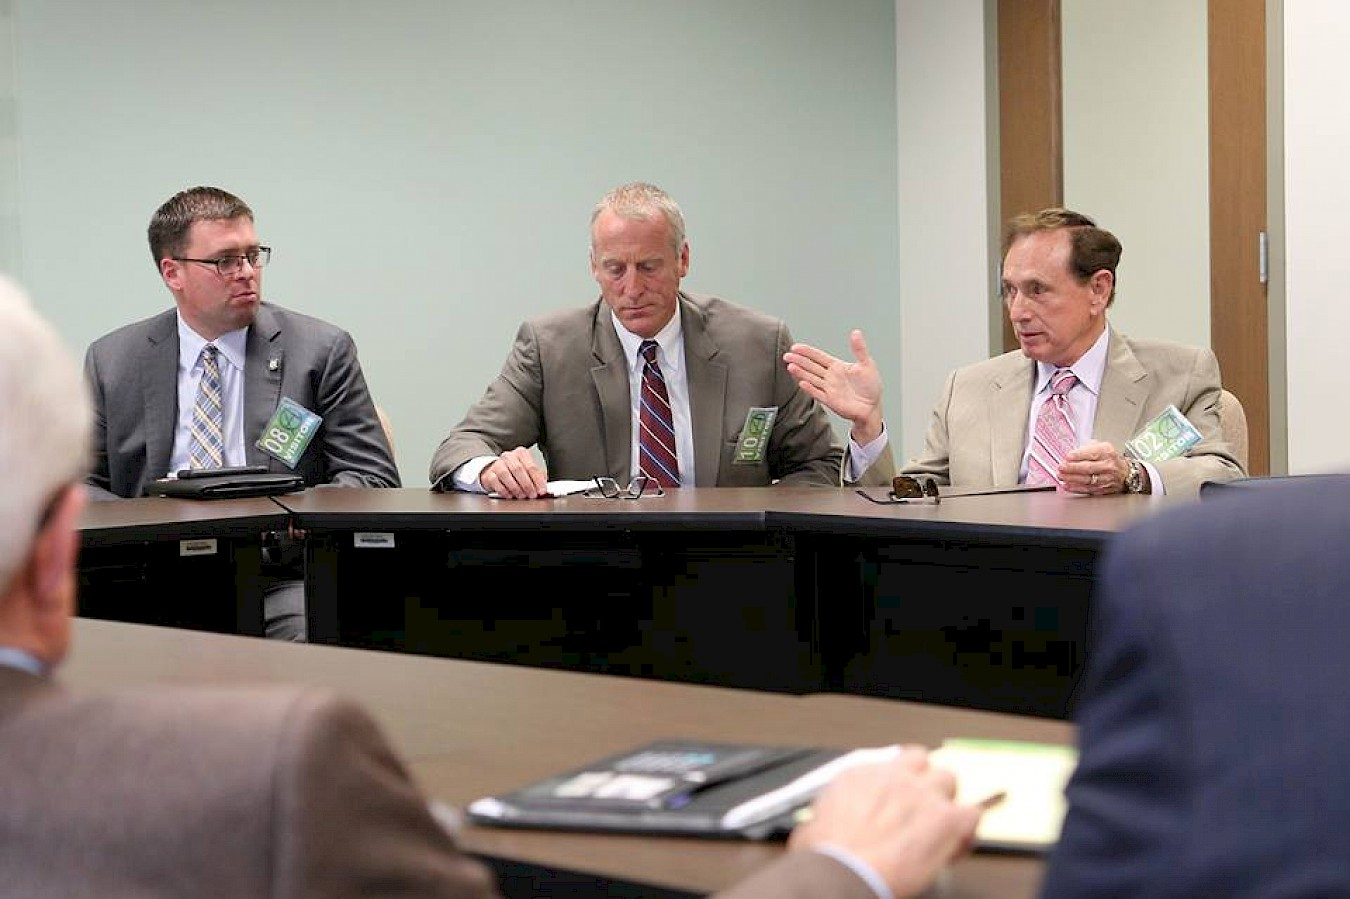 Forrest Lucas and Protect The Harvest Discuss Right to Farm Amendment with Oklahoma Ag Groups